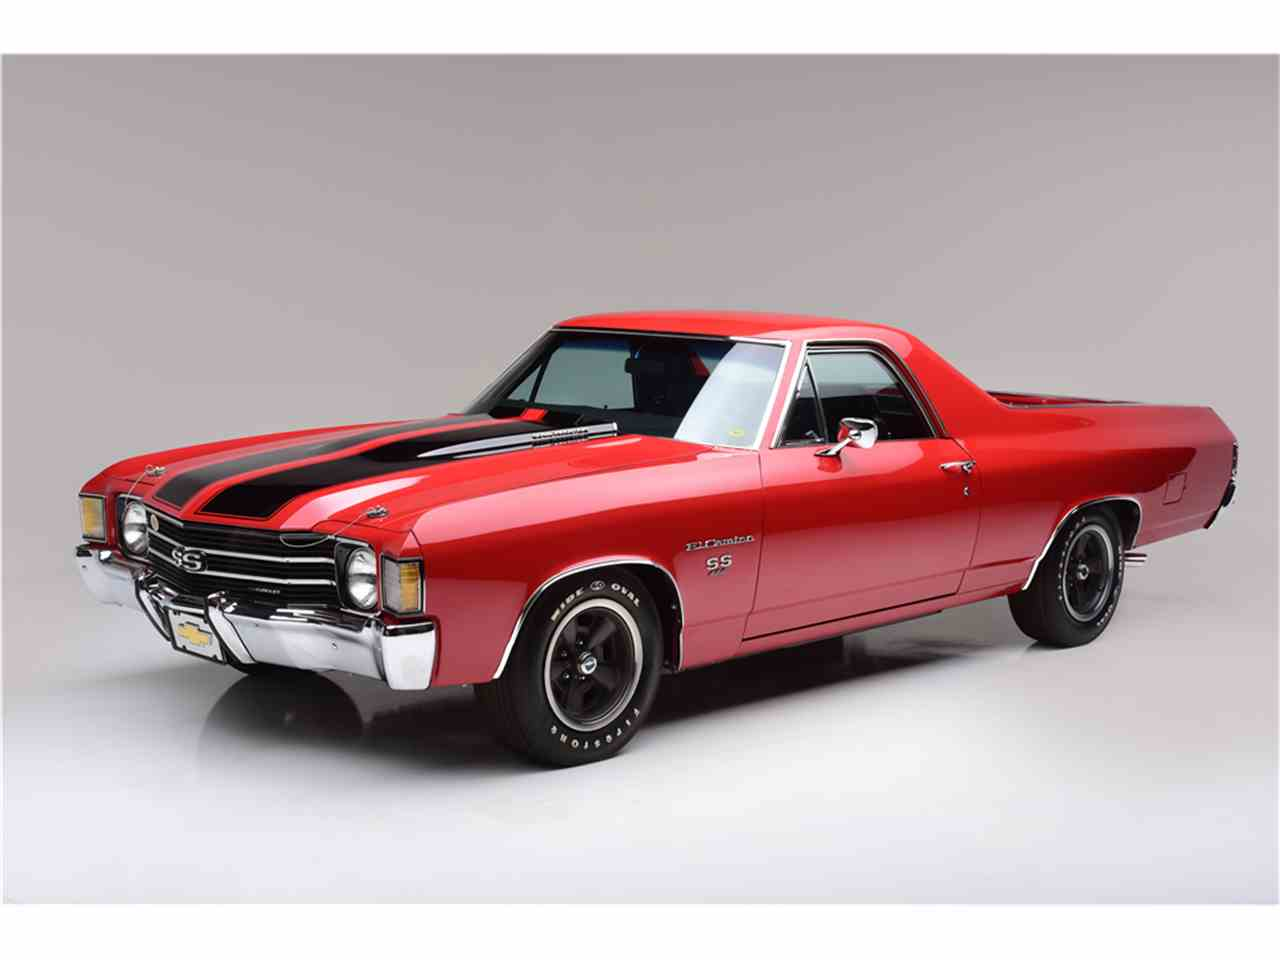 1972 chevrolet el camino ss for sale cc 1051154. Black Bedroom Furniture Sets. Home Design Ideas